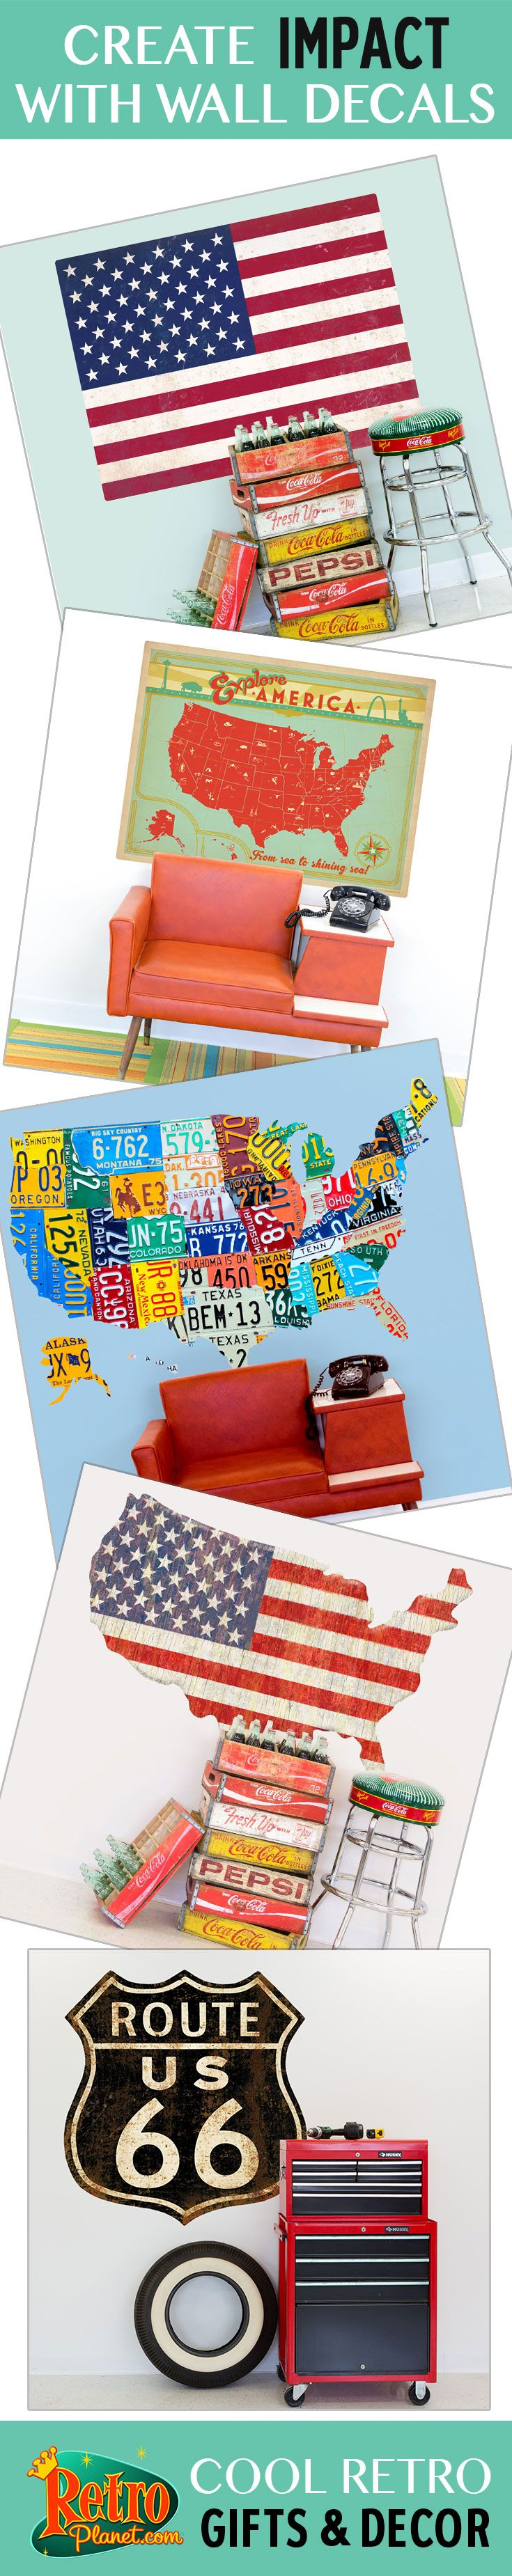 341 best wall decals images on pinterest art walls basement 341 best wall decals images on pinterest art walls basement ceiling options and basement ceilings amipublicfo Gallery